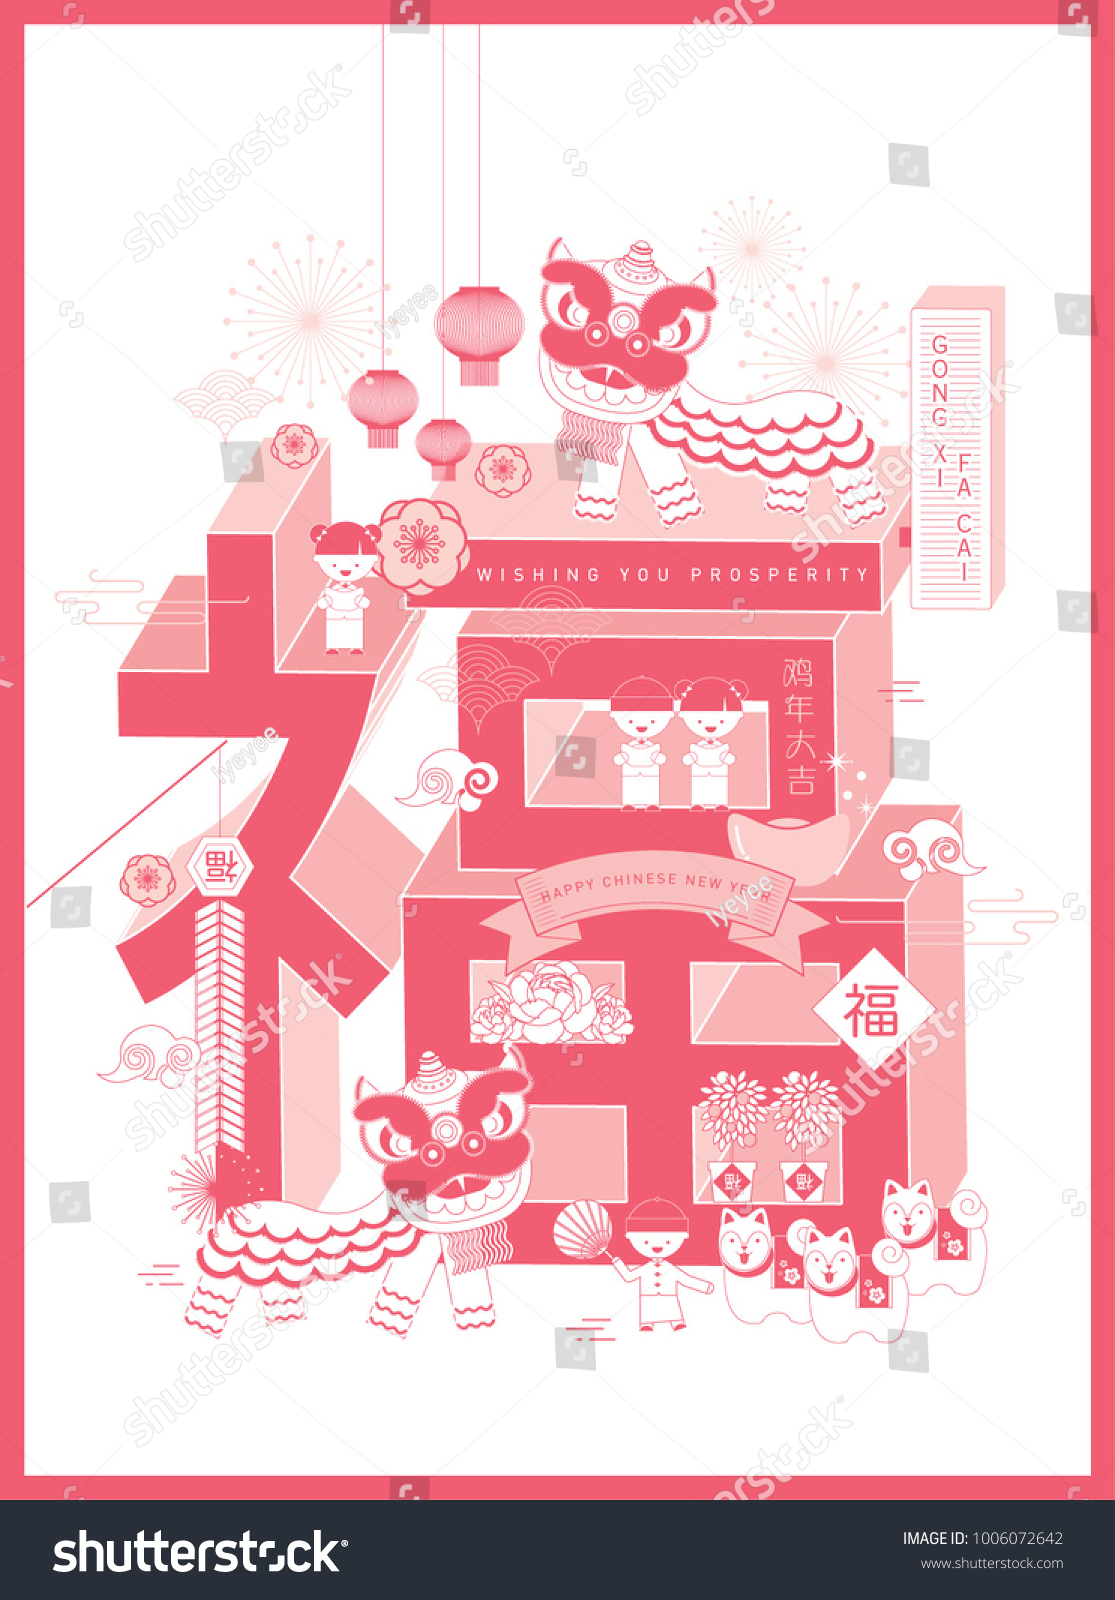 Blessing chinese new year greetings template stock vector 1006072642 blessing chinese new year greetings template vectorillustration with chinese words that mean kristyandbryce Choice Image